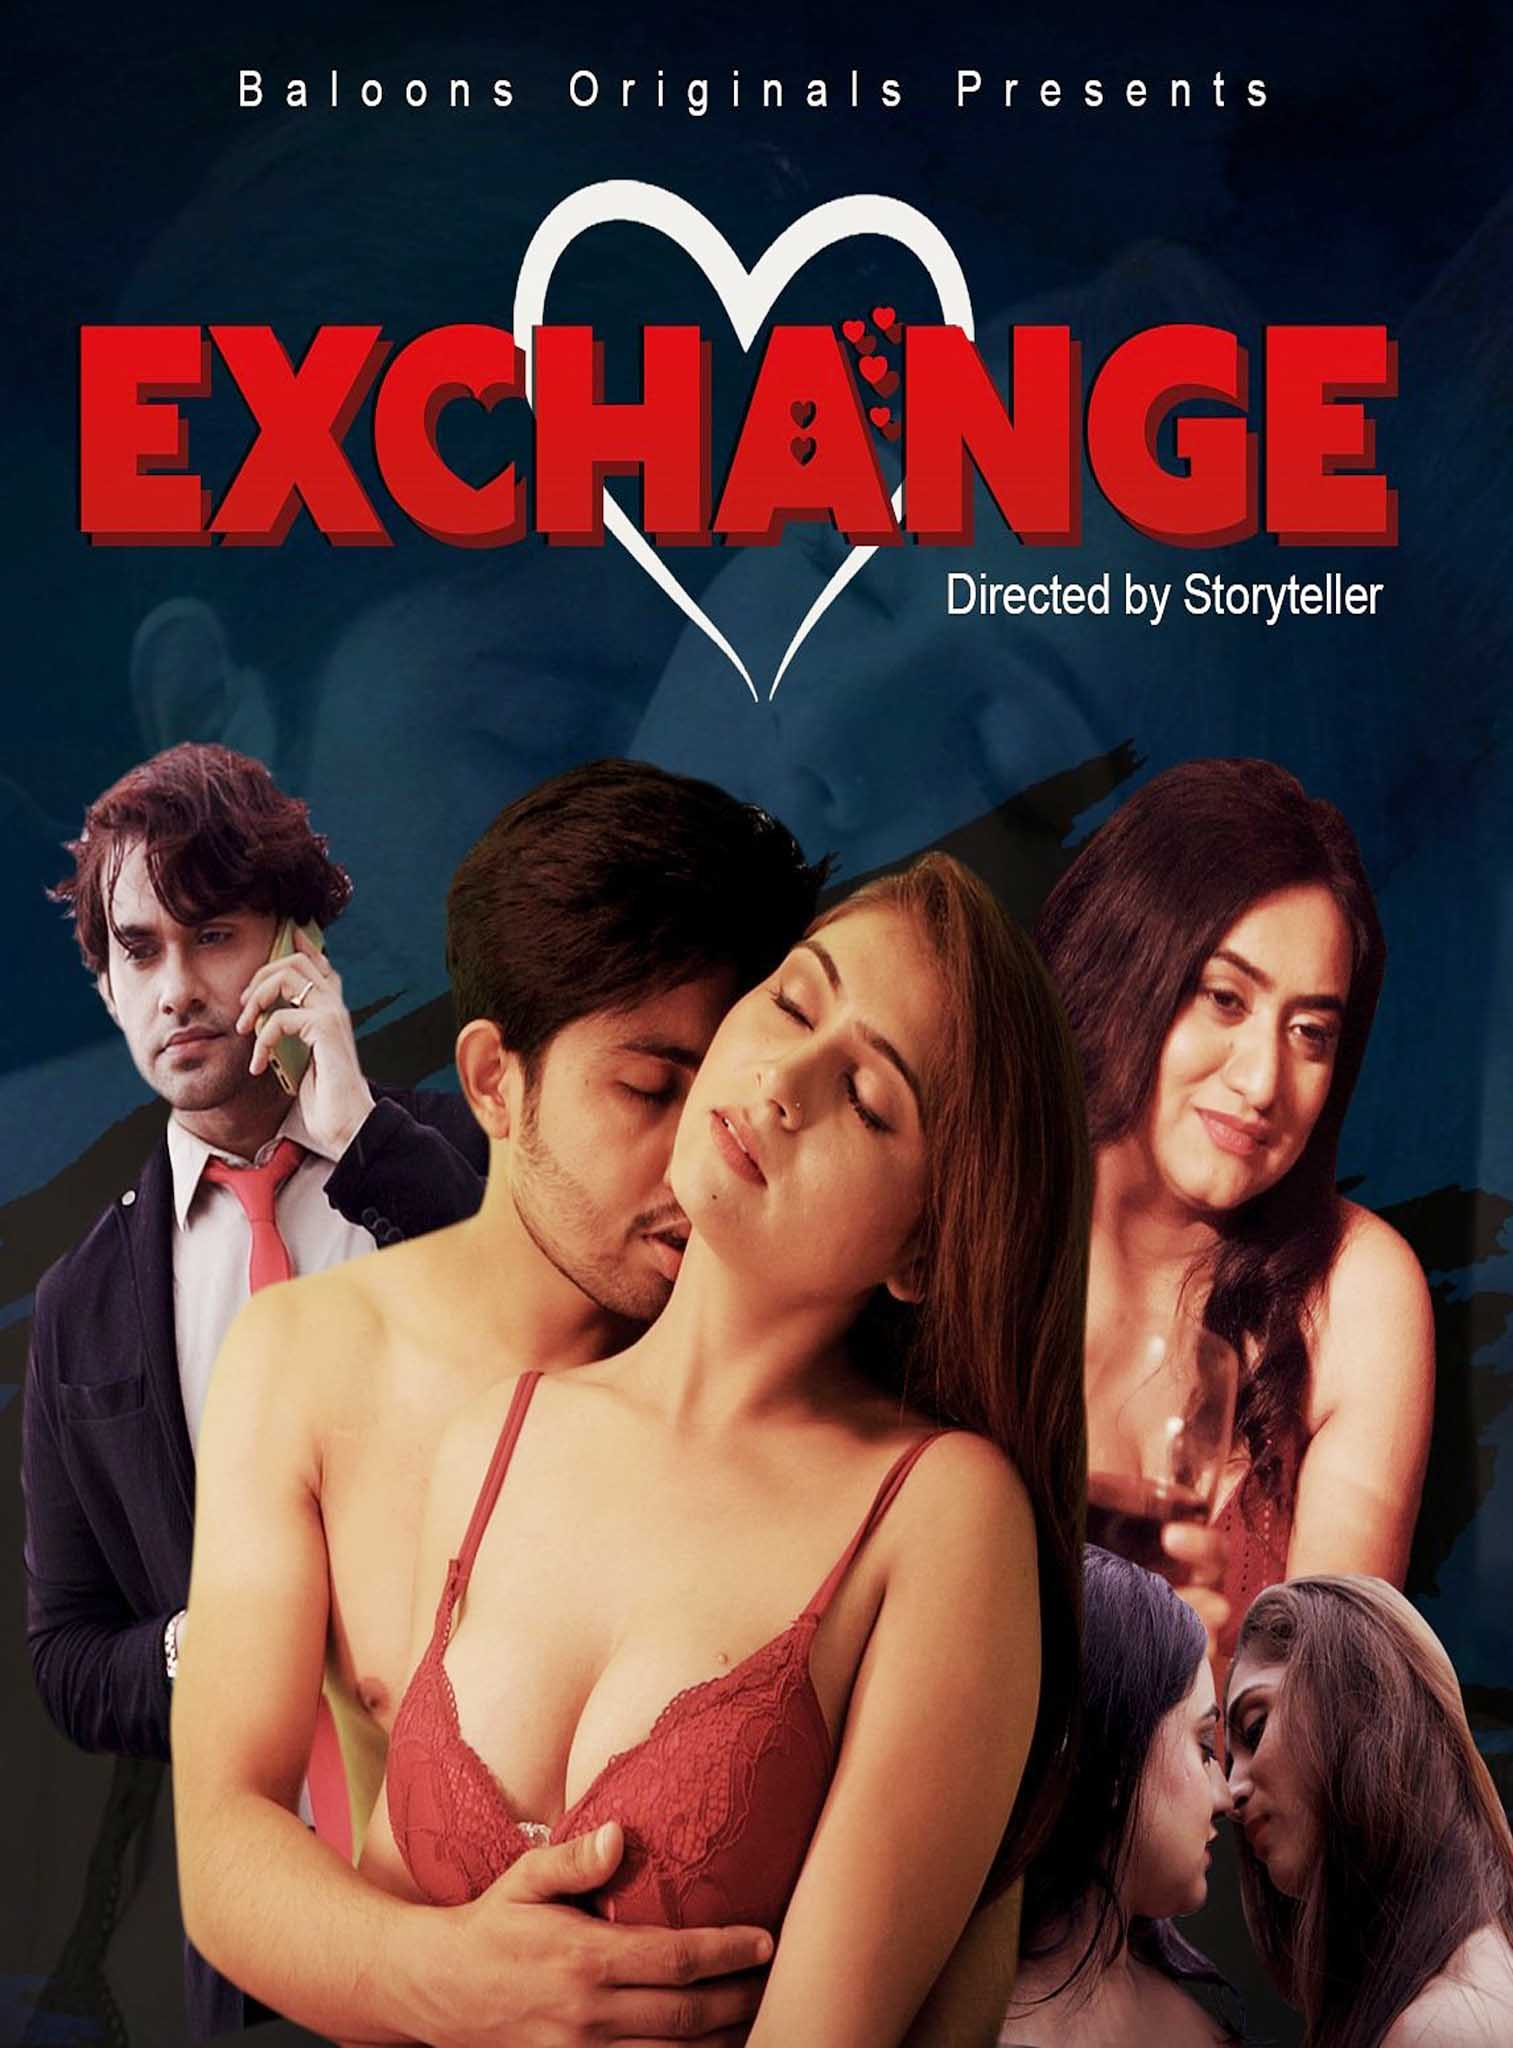 18+ Exchange 2020 Hindi S01E01 Balloons Web Series 720p HDRip 150MB x264 AAC